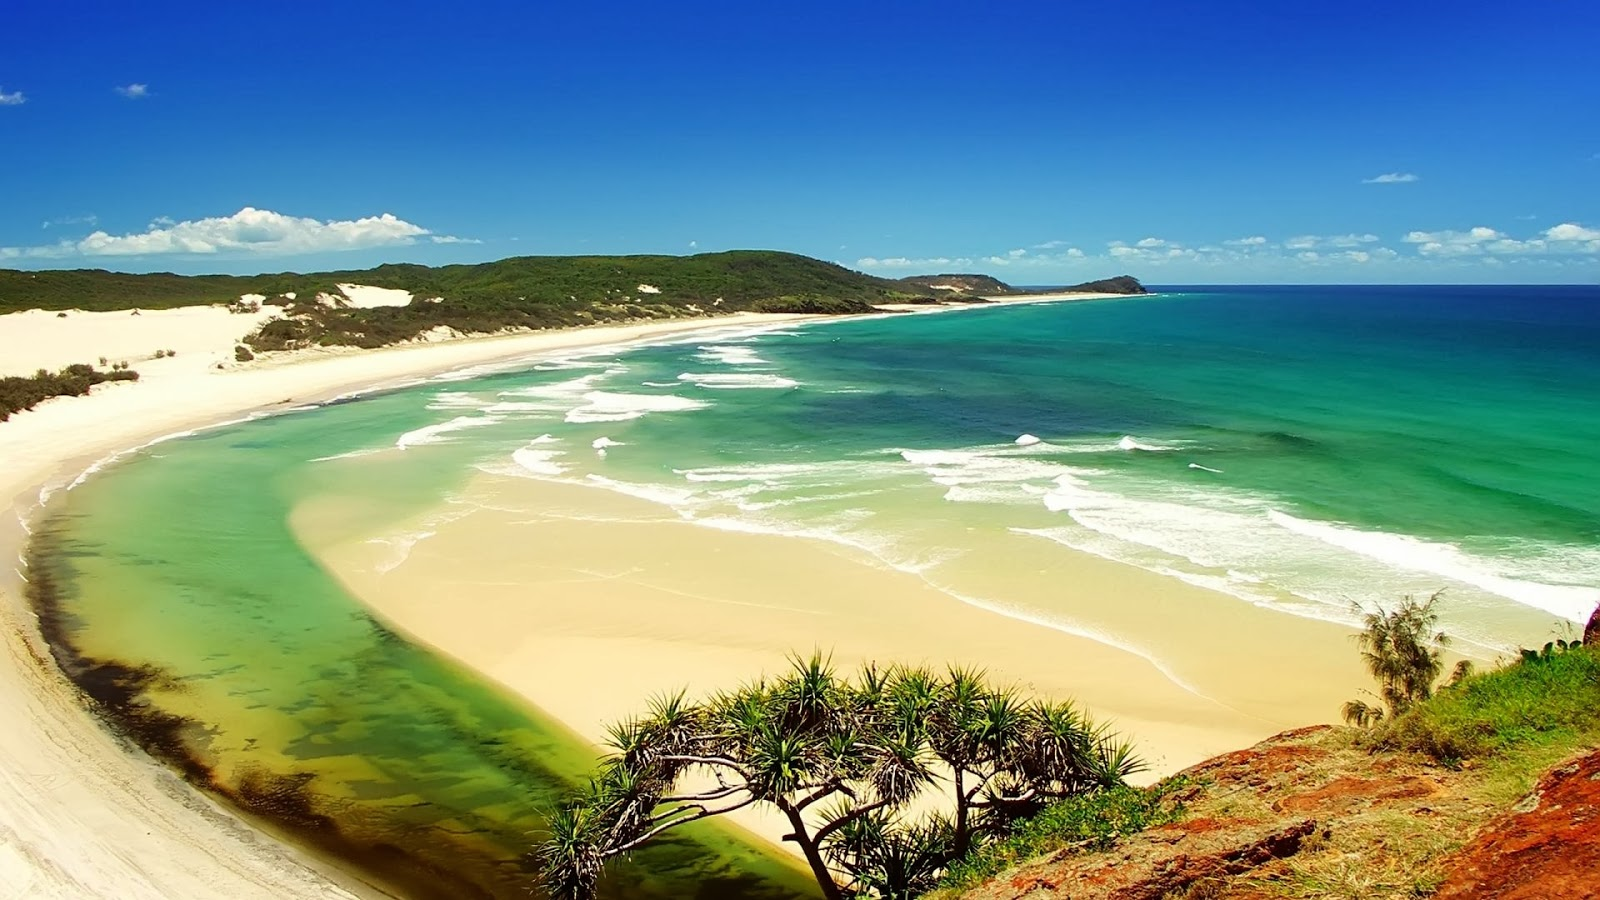 Beautiful Beach Images Hd Nature: Widescreen Beach HD Nature Images Wallpapers For Desktop